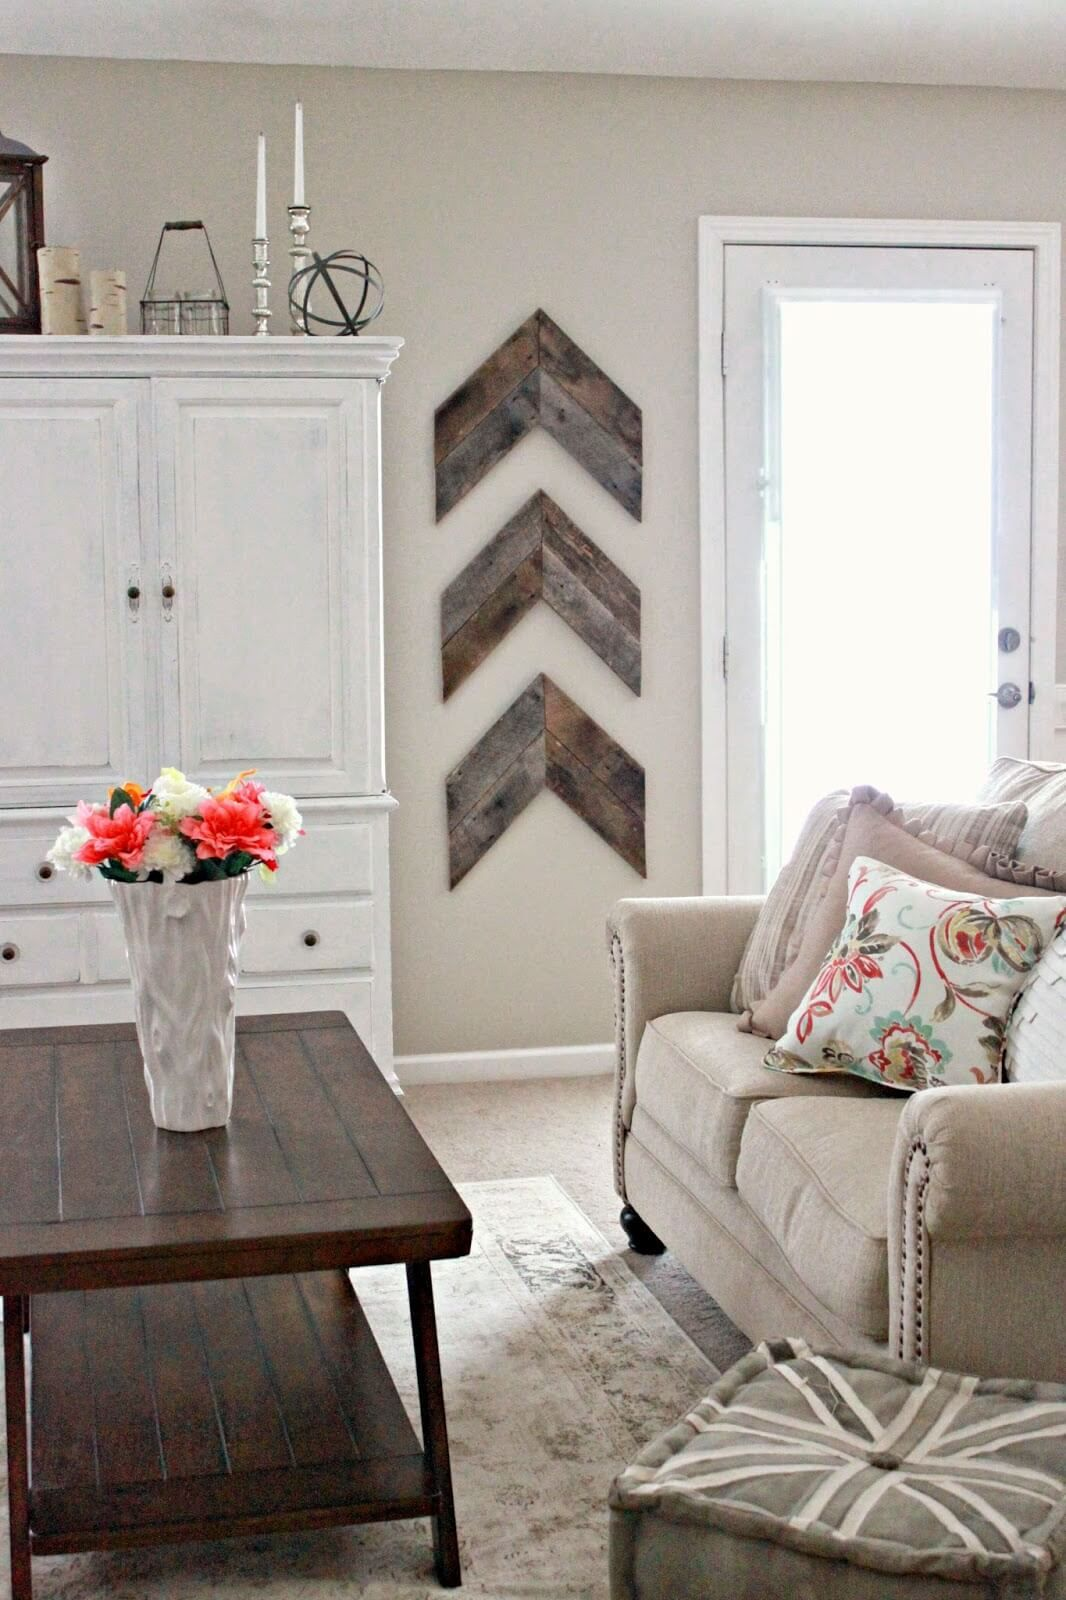 6 Country-Chic Home Decor Accents